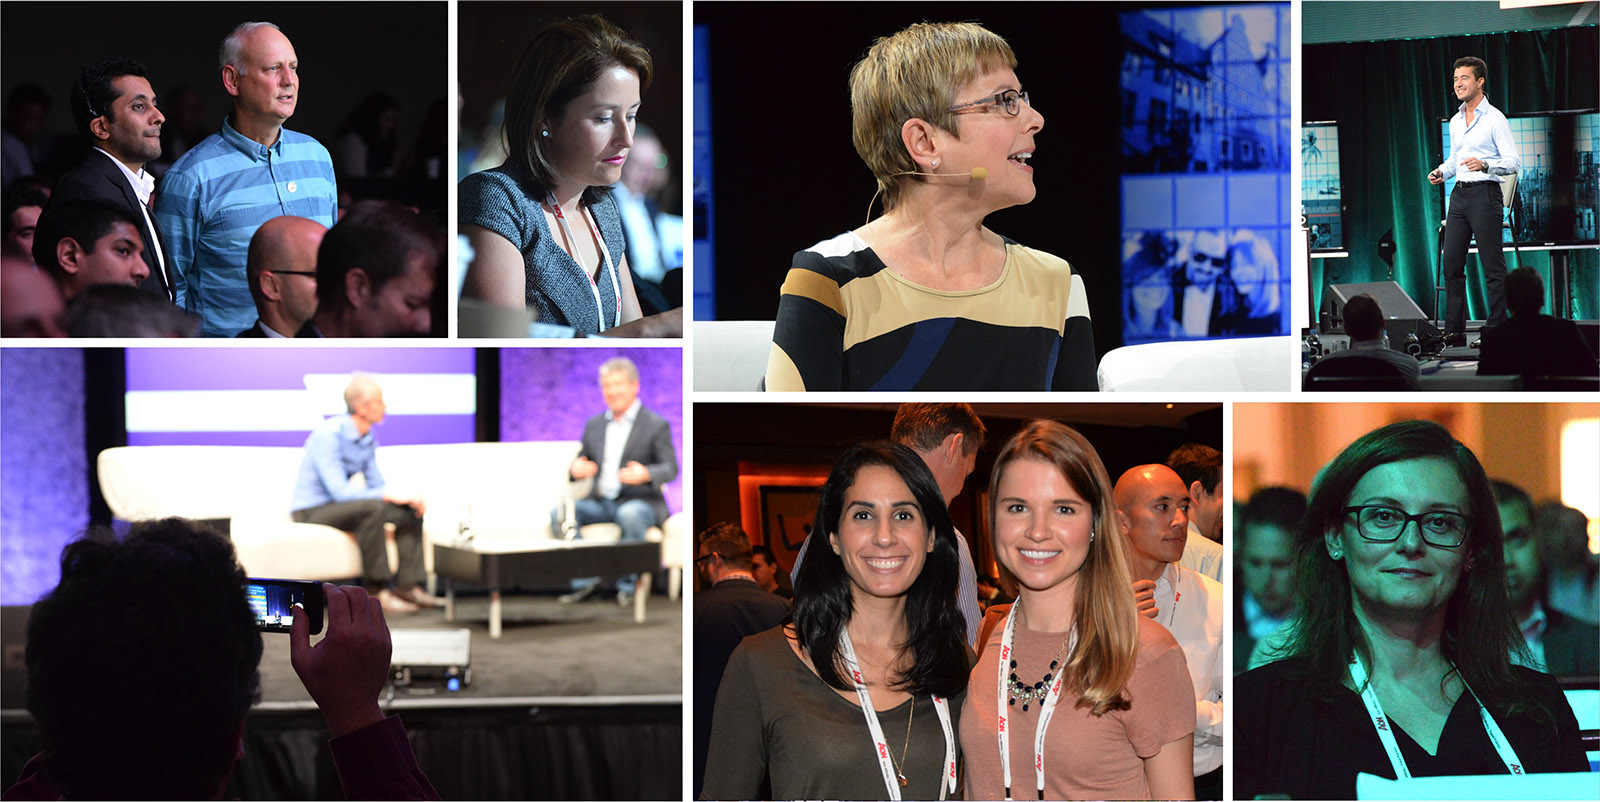 About The Phocuswright Conference - Justify Your Trip - Attendee Collage